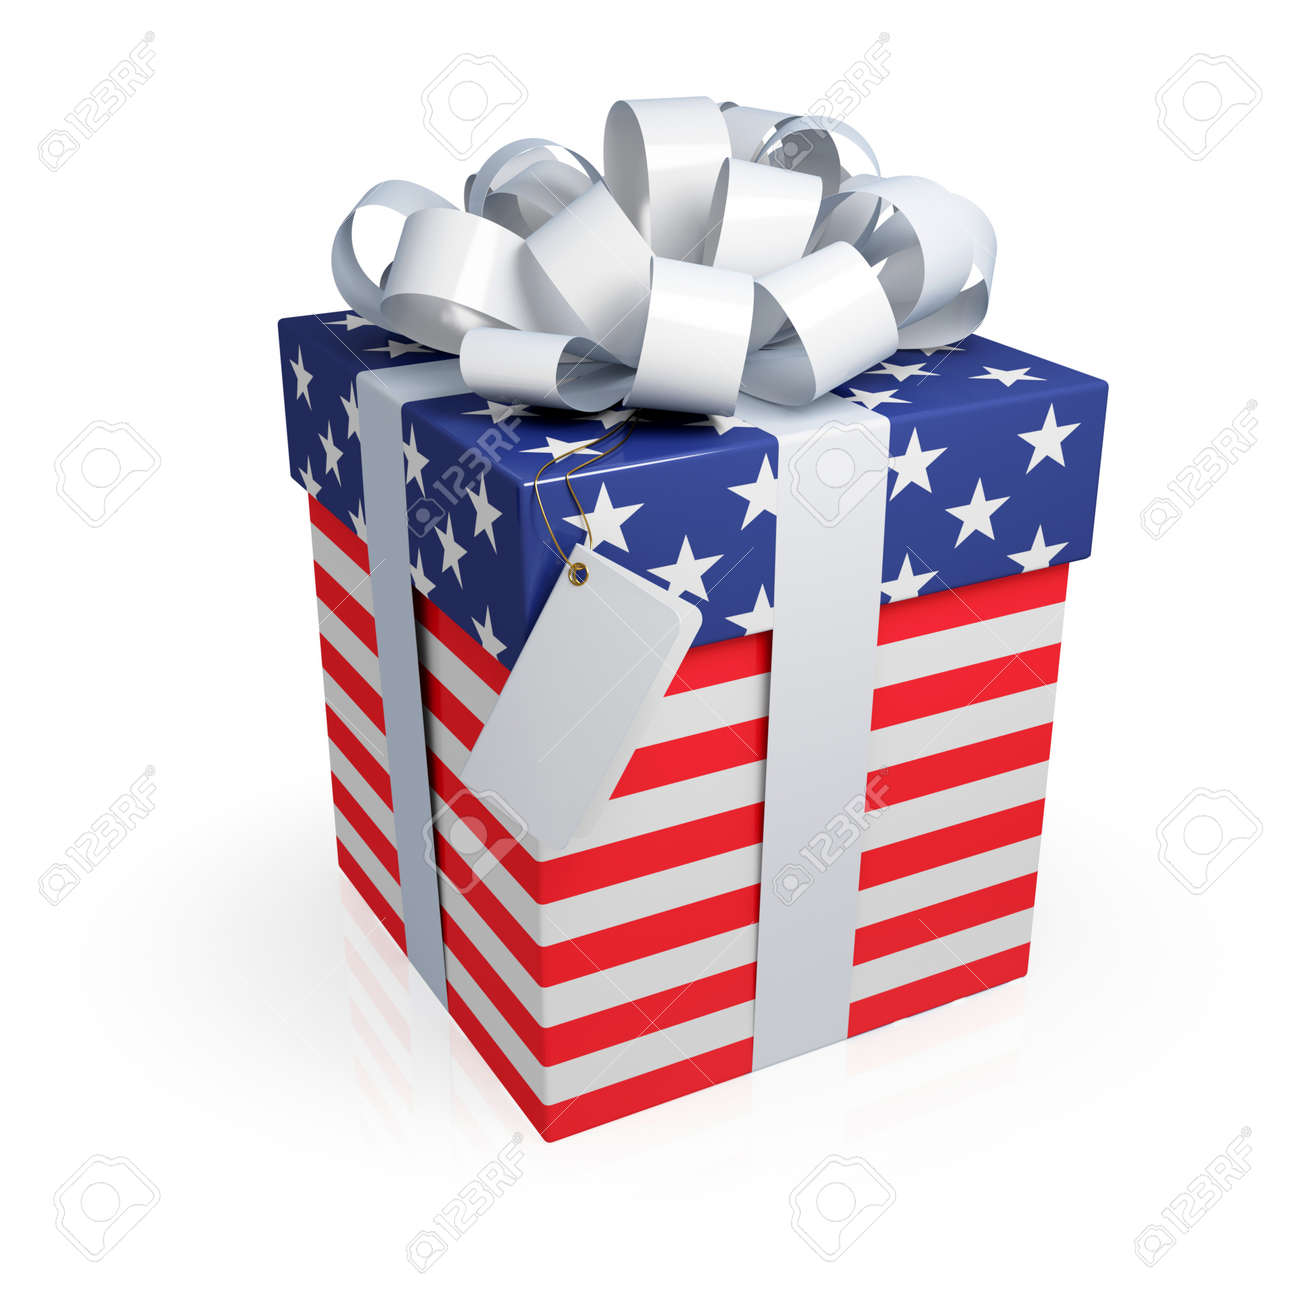 ed0e70a924a American gift box. 3d rendered. Isolated on white. Stock Photo - 12218522